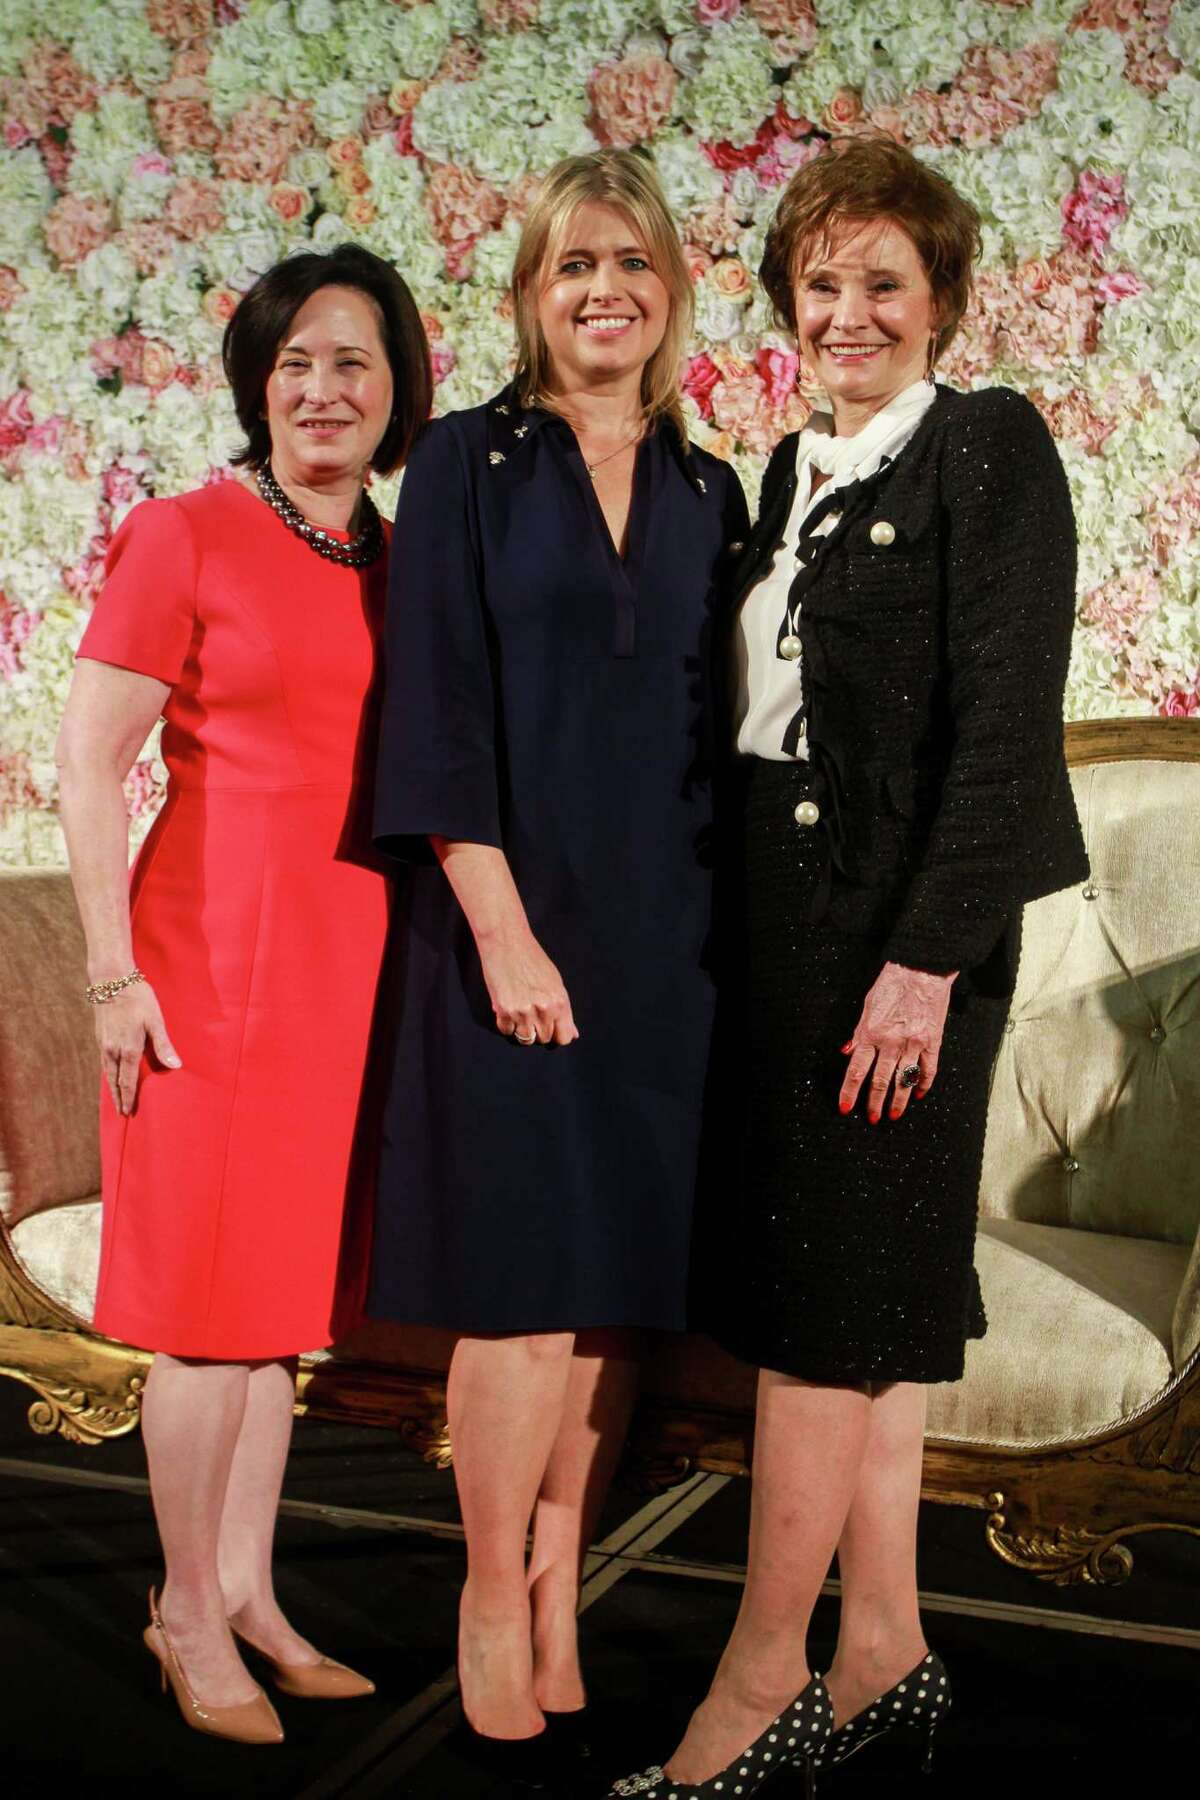 Anne Neeson, CEO of Memorial Hermann Foundation, from left, British designer Jenny Peckham, and chair Bobbie Nau at the Razzle Dazzle, Memorial Hermann's annual breast cancer luncheon.